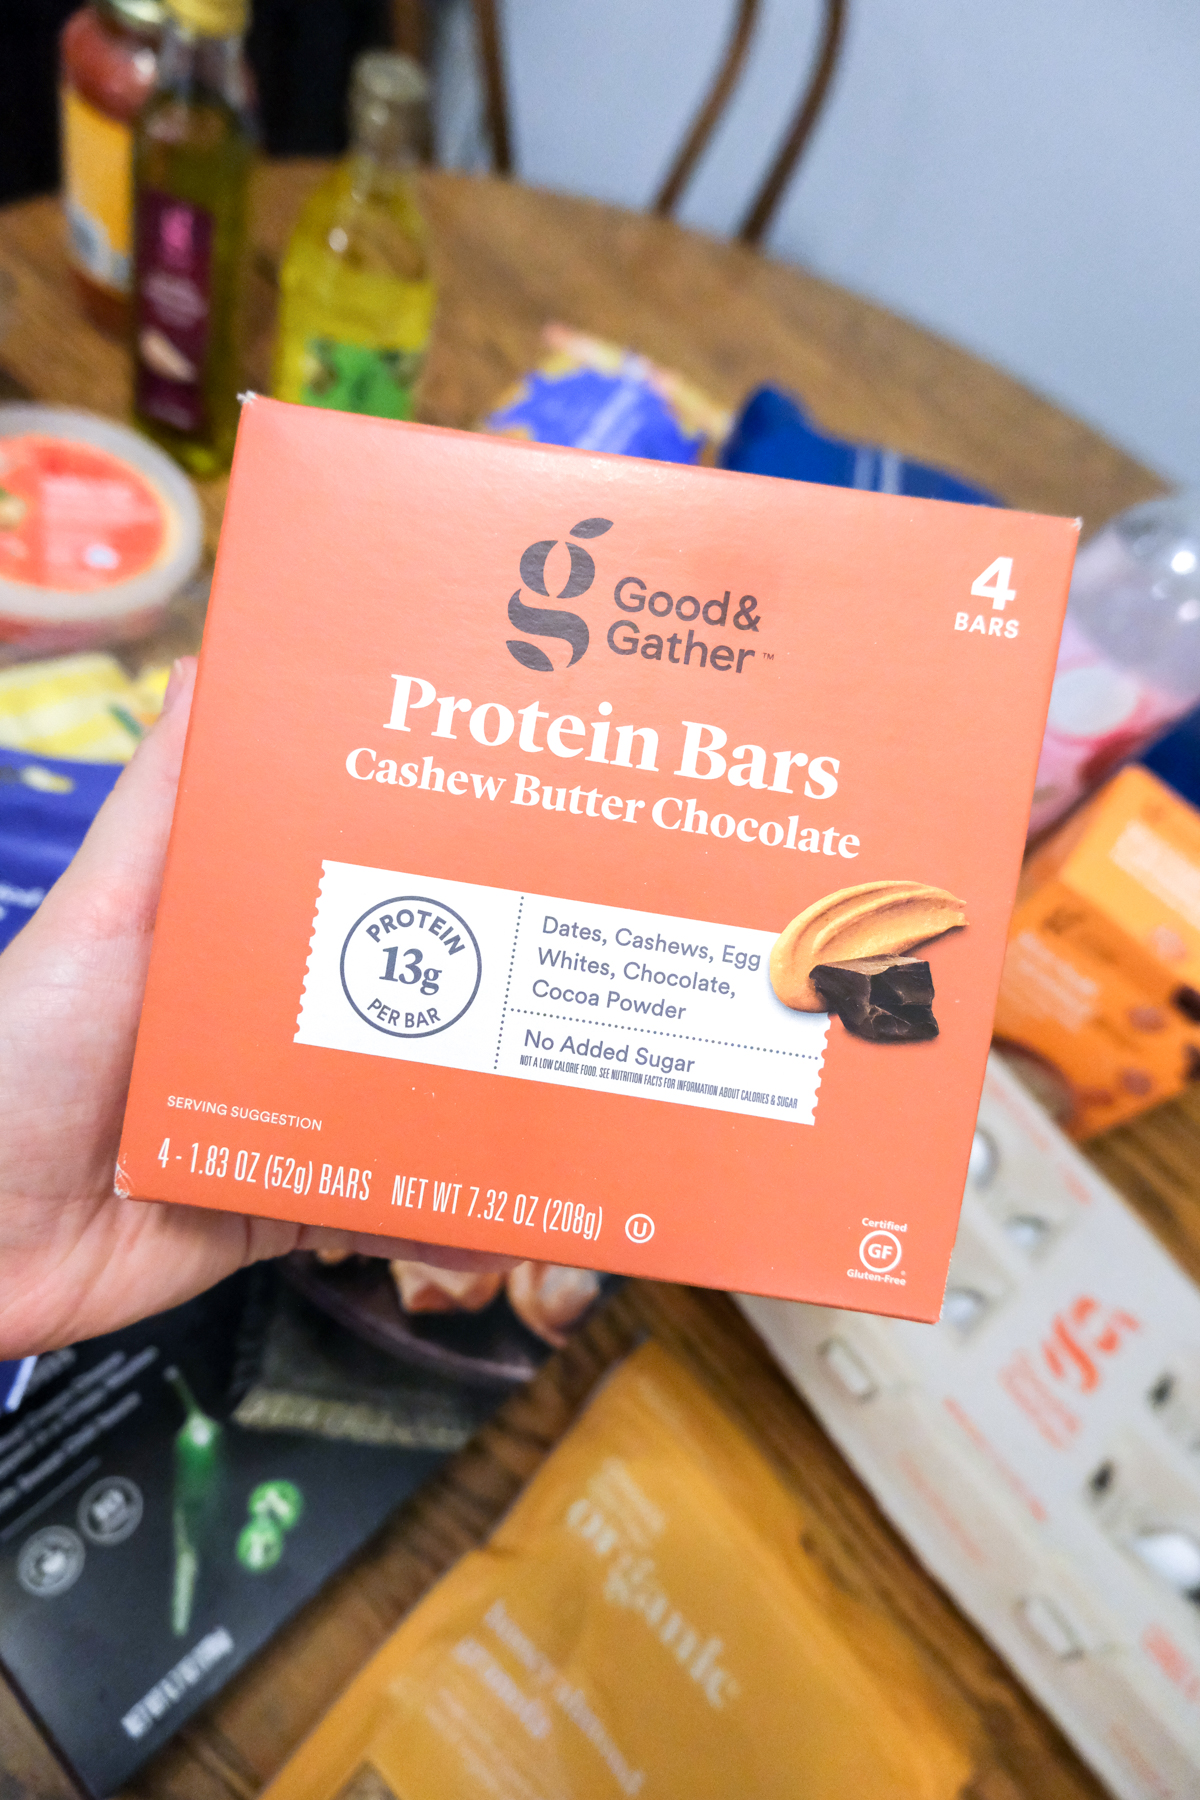 protein bars Good & Gather from Target